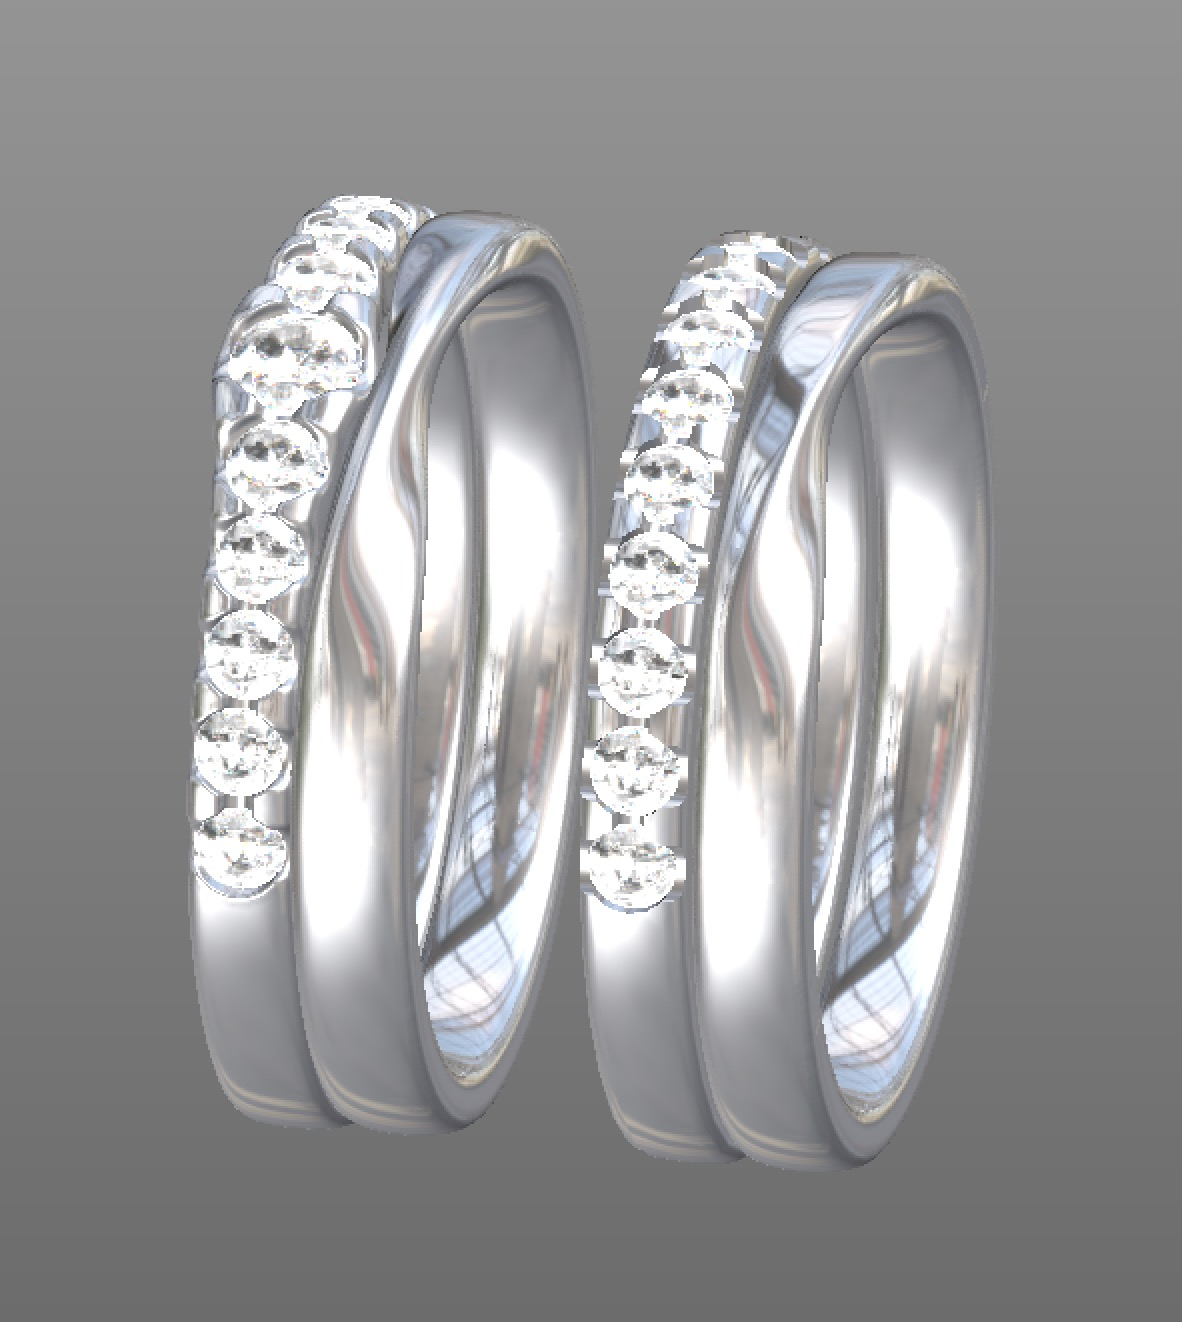 Copy of CAD work for options on a graduated diamond band with soft twist centre wedding band and straight diamond set band with sharper edged twist centre wedding band.